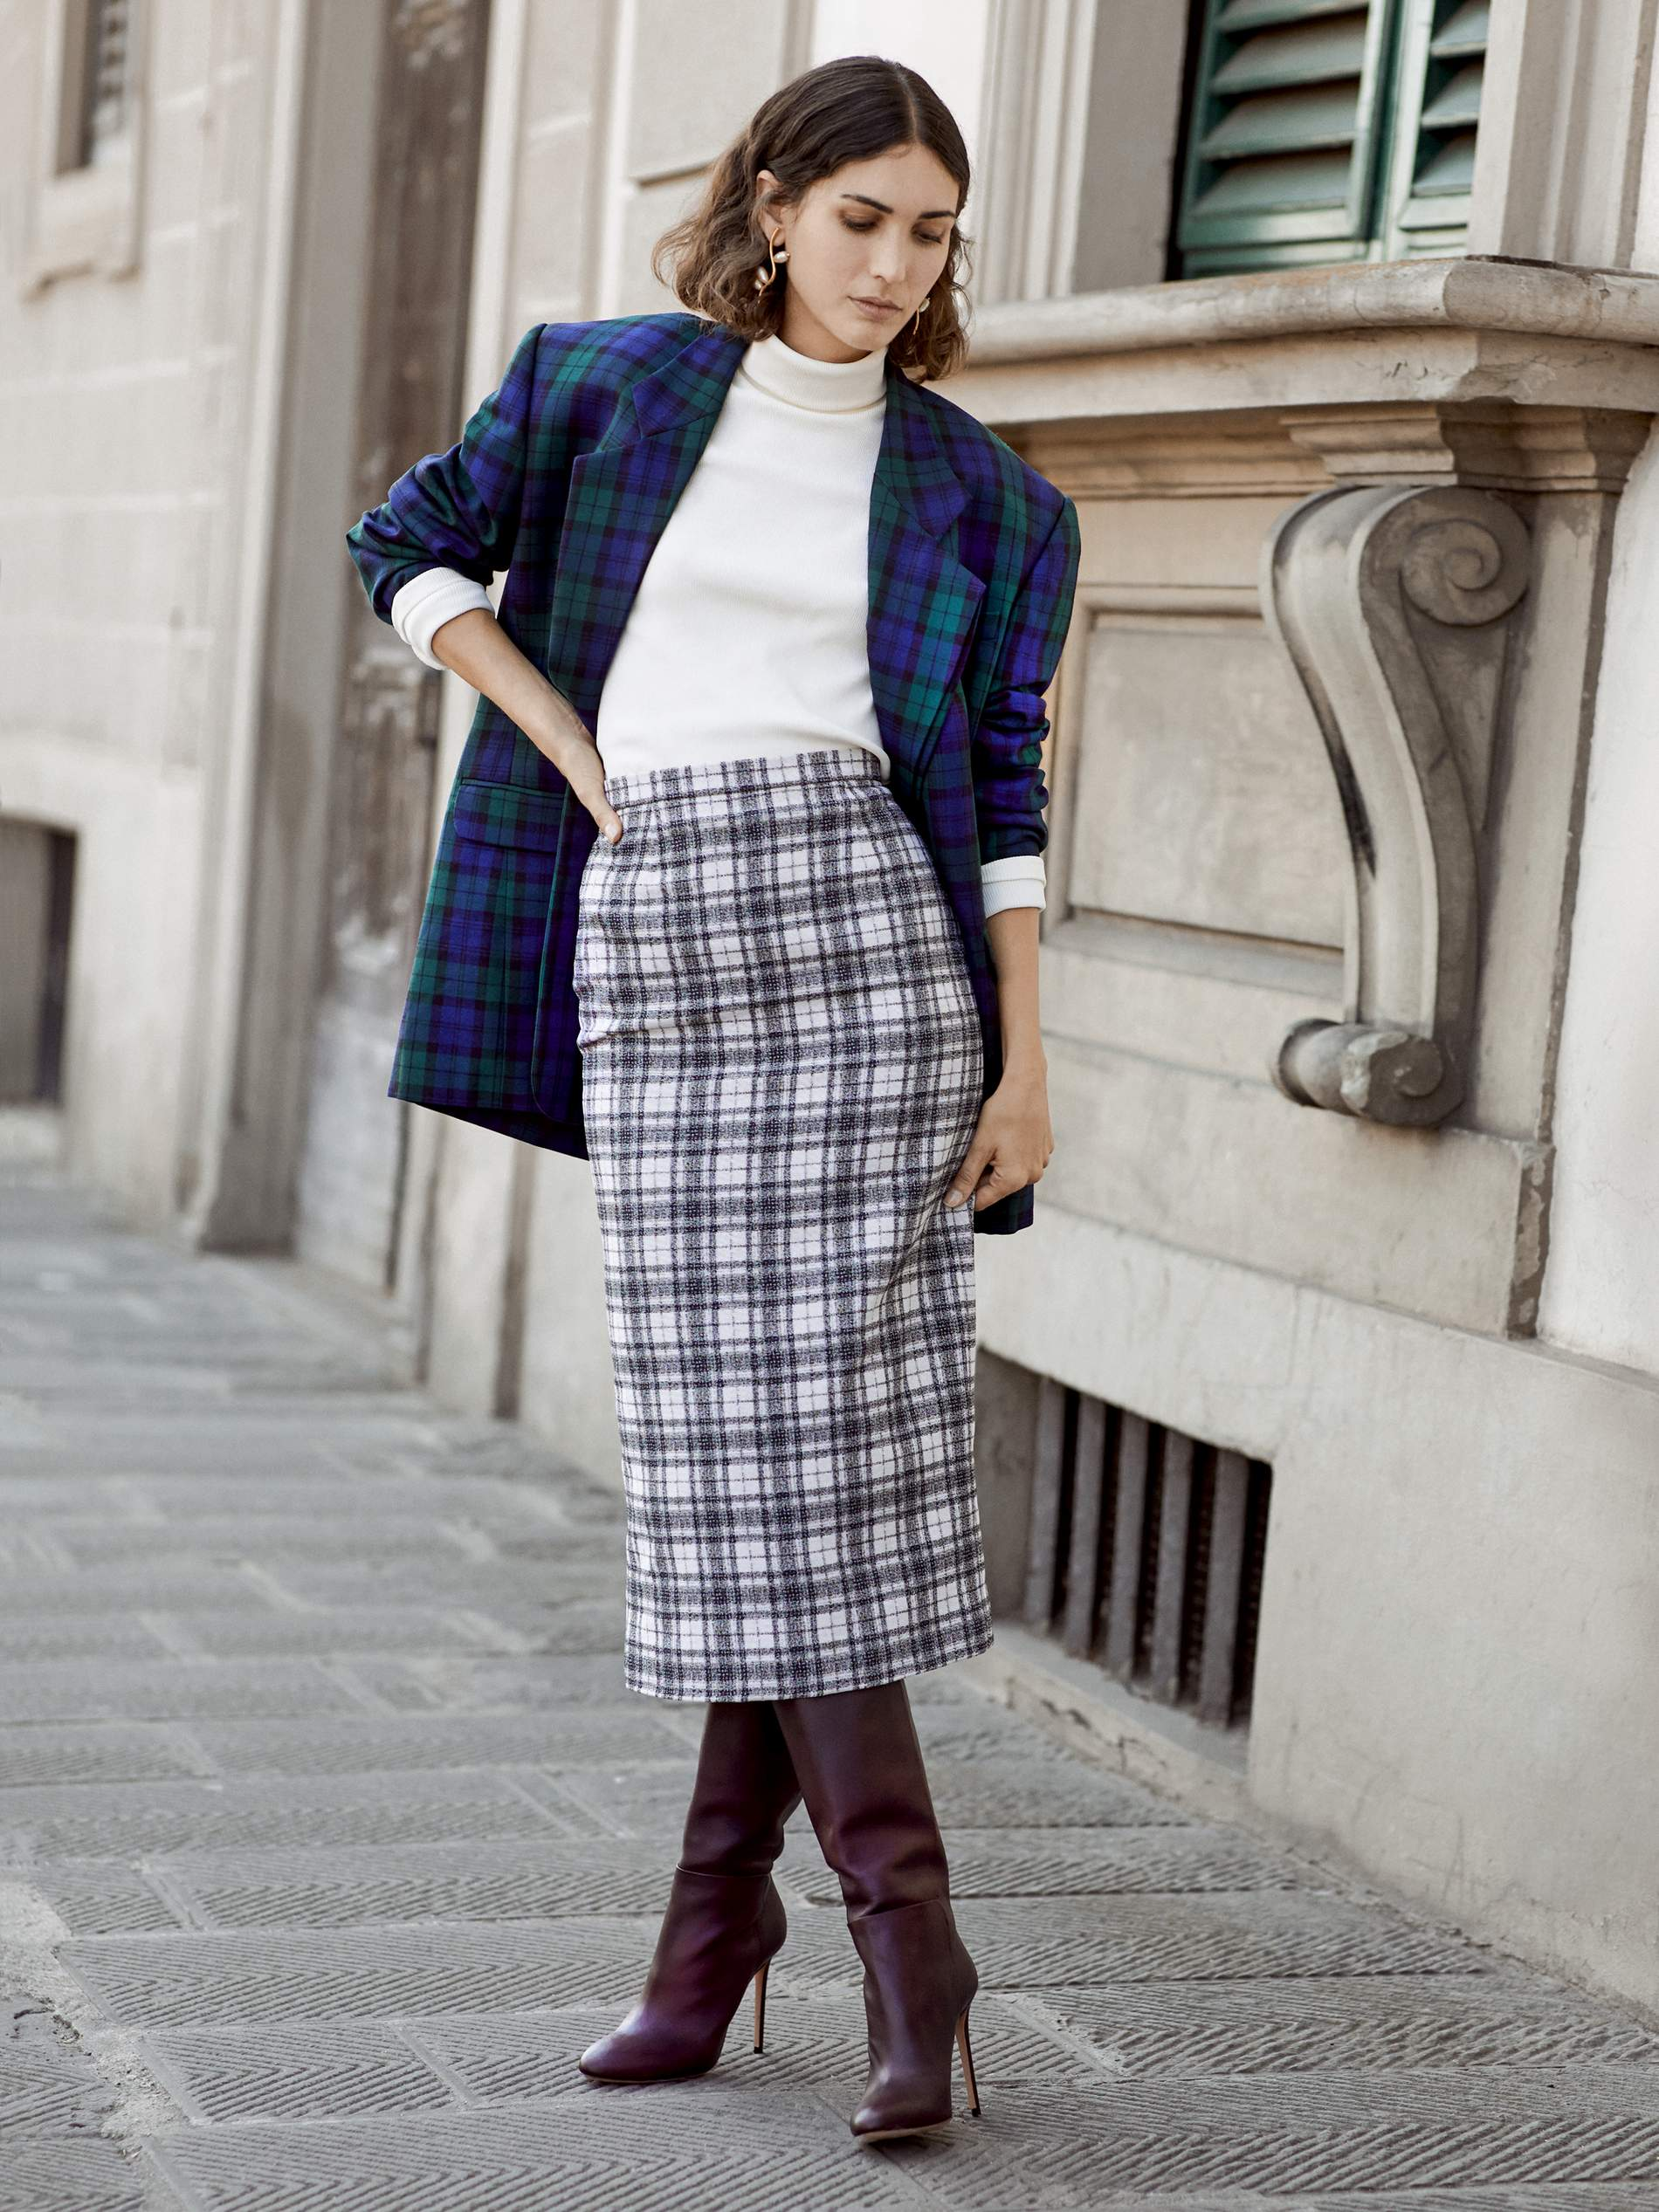 Fashion Fall trends for women